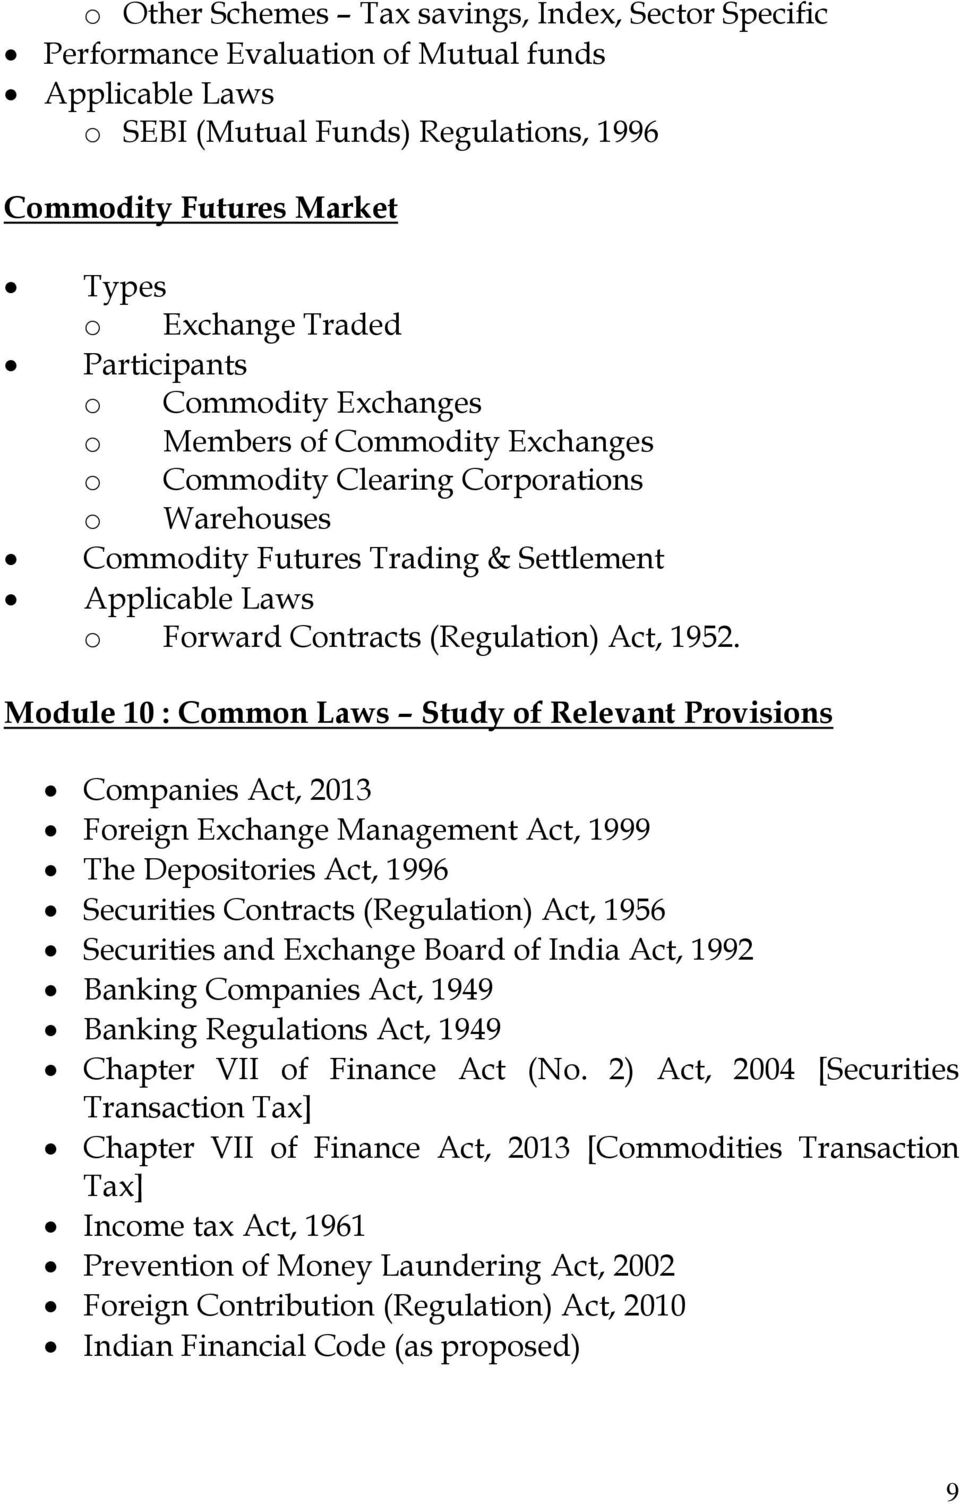 Module 10 : Common Laws Study of Relevant Provisions Companies Act, 2013 Foreign Exchange Management Act, 1999 The Depositories Act, 1996 Securities Contracts (Regulation) Act, 1956 Securities and